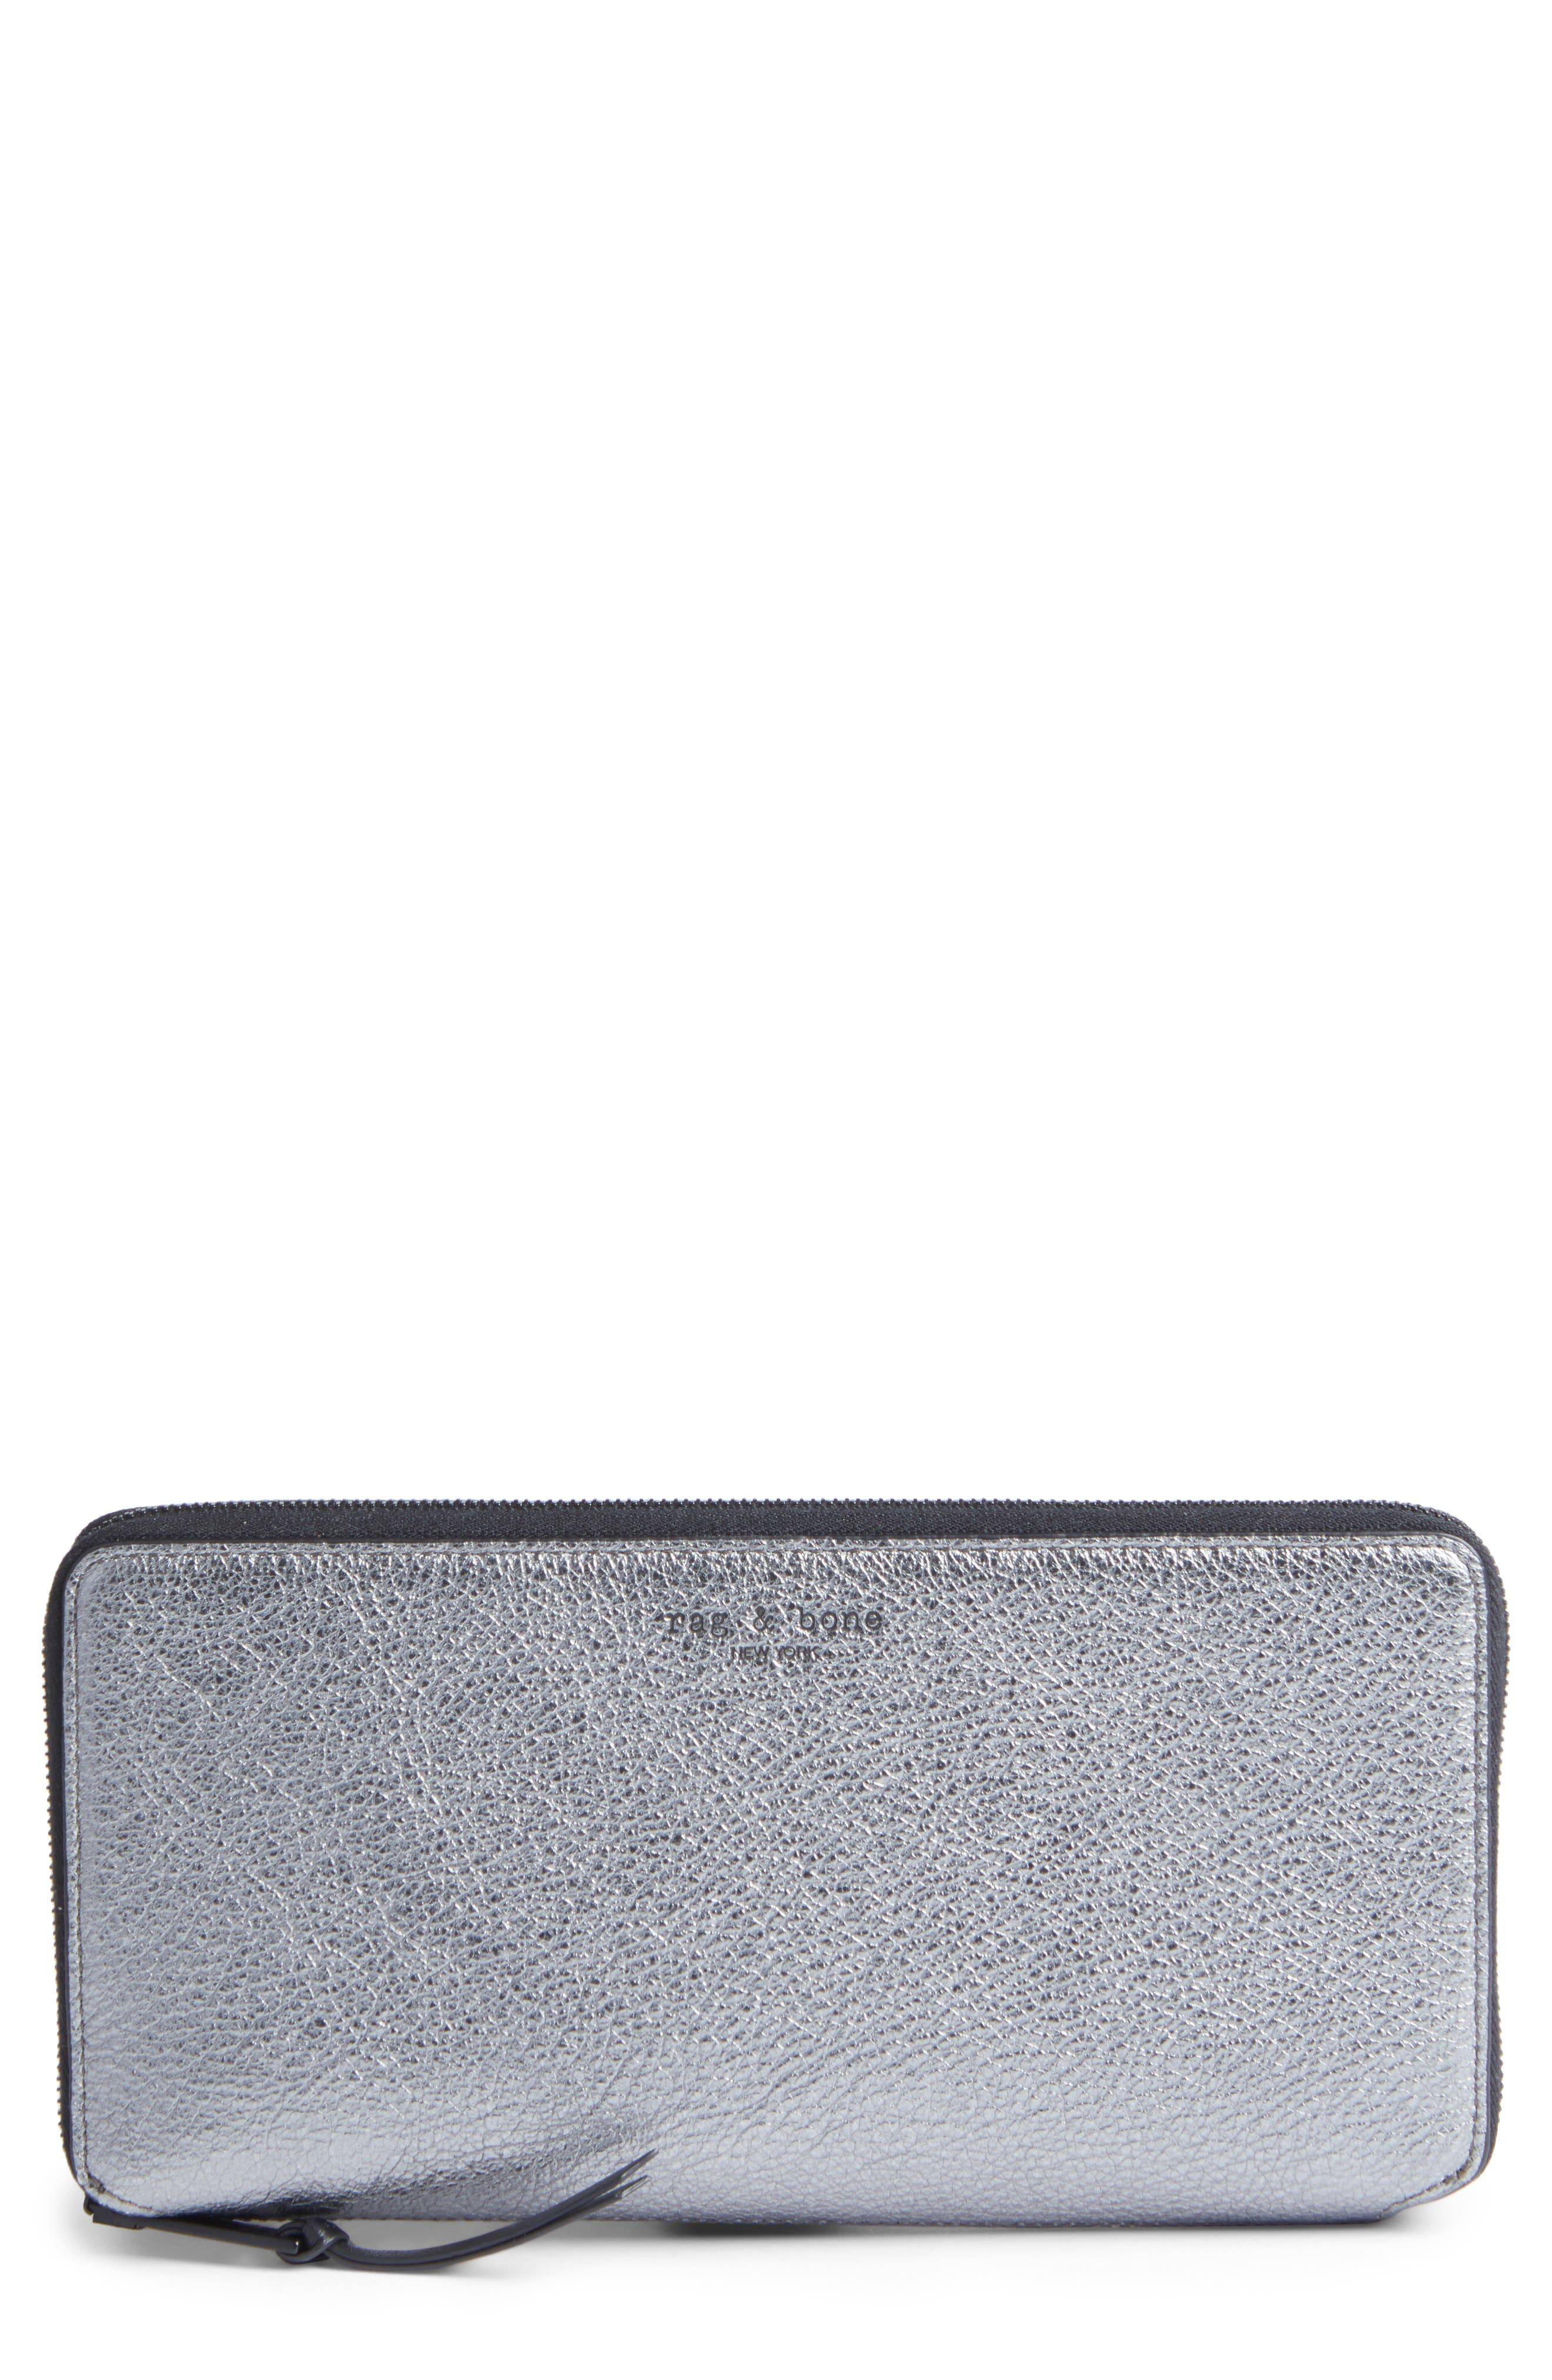 rag & bone Metallic Buffalo Leather Phone Wallet